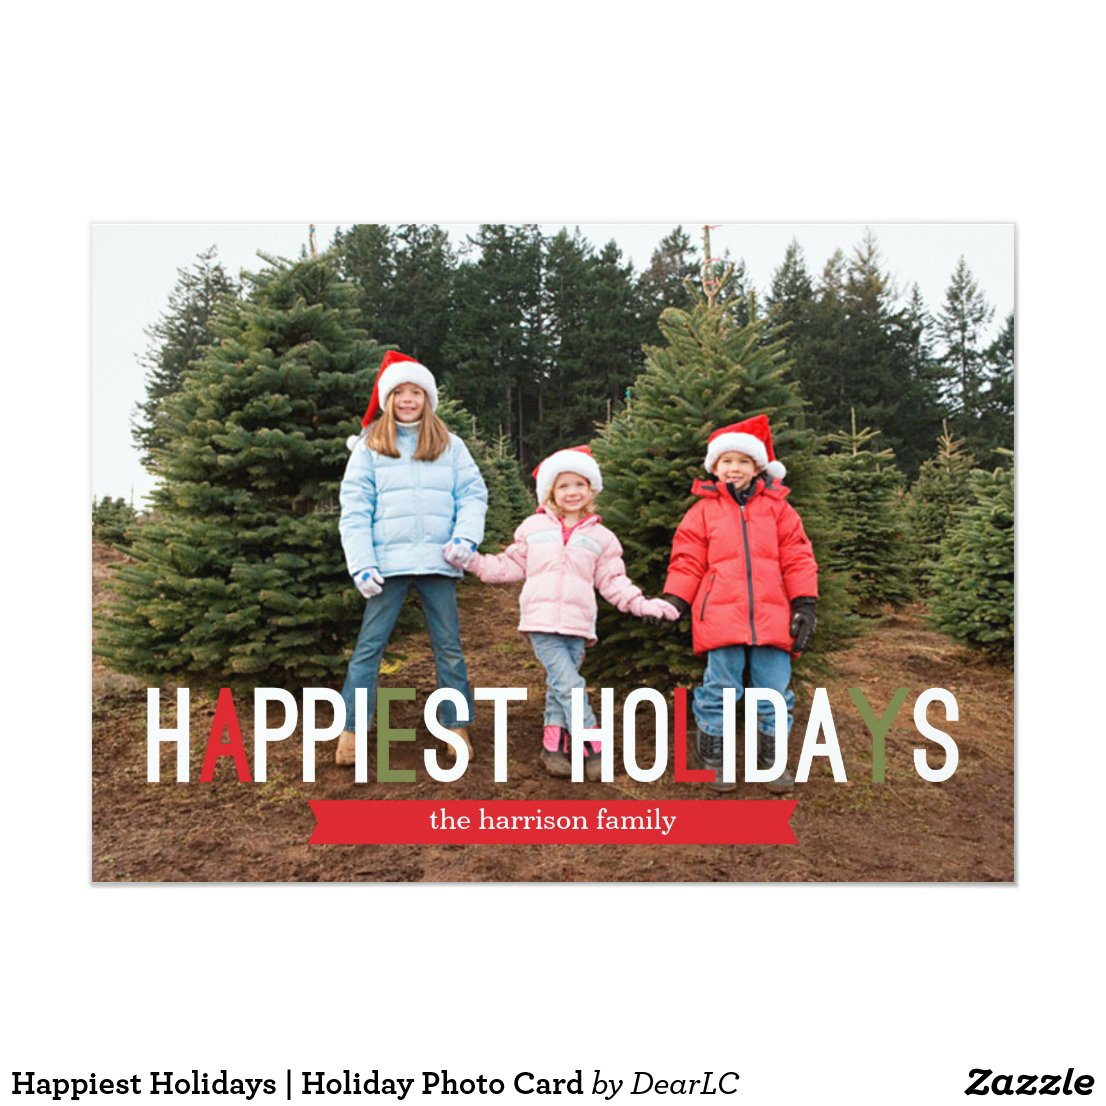 Happiest Holidays | Holiday Photo Card